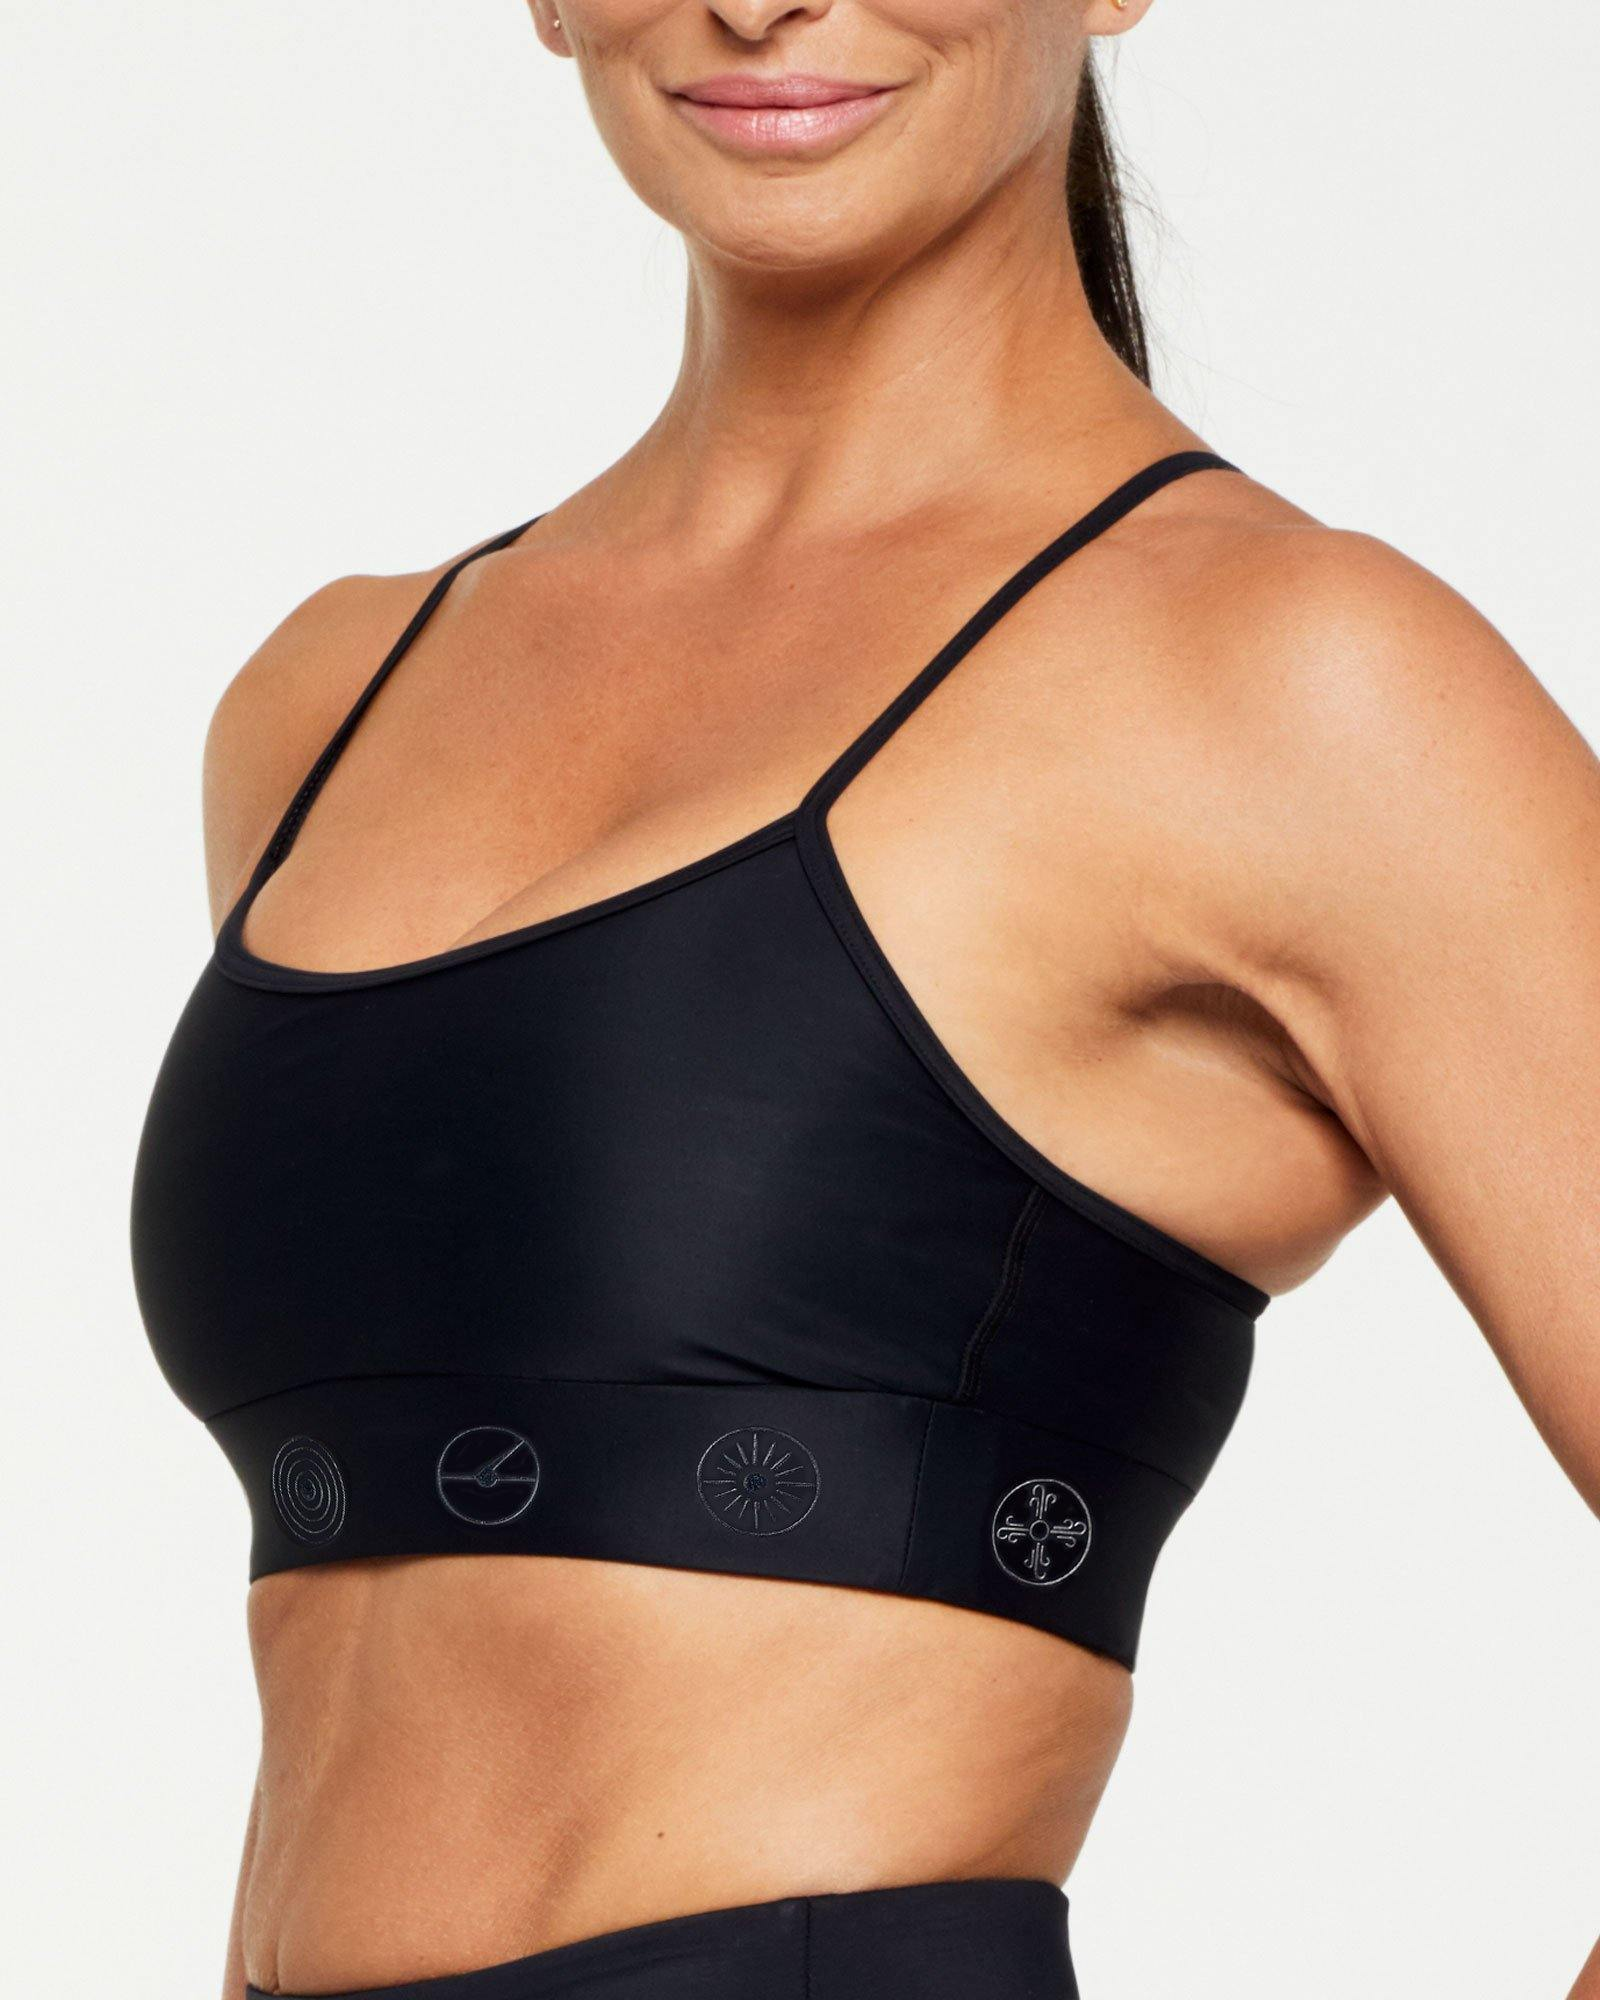 Companion Infraspinatus Bra top BLACK WITH BLACK SYMBOLS, SIDE VIEW